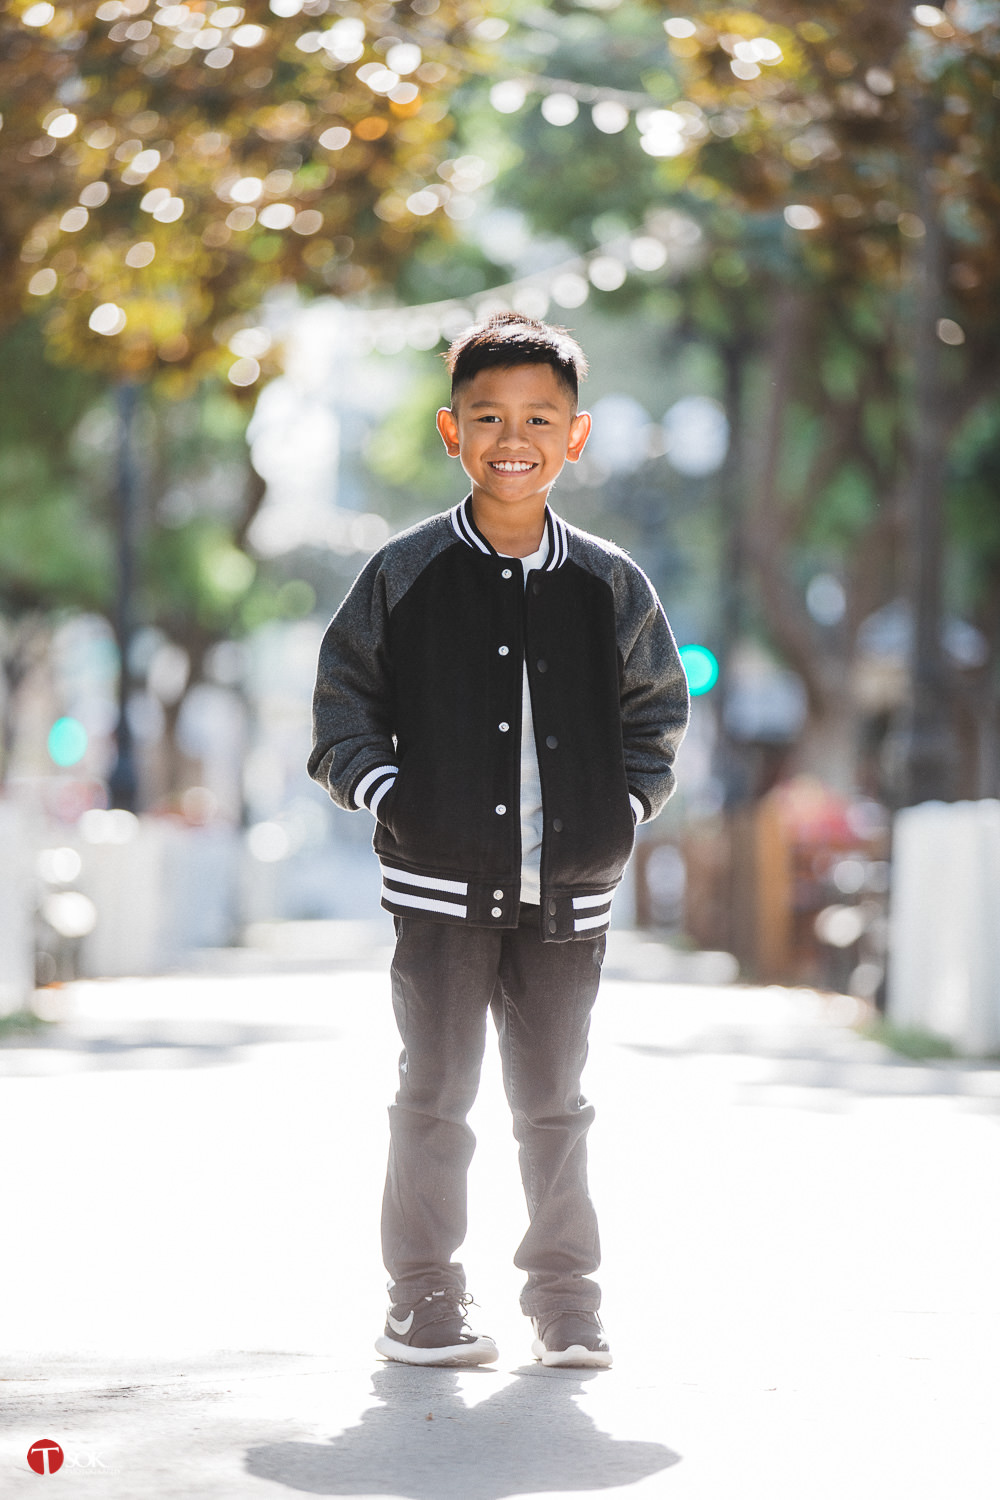 taylor-family-photoshoot-downtown-san-jose-10.jpg